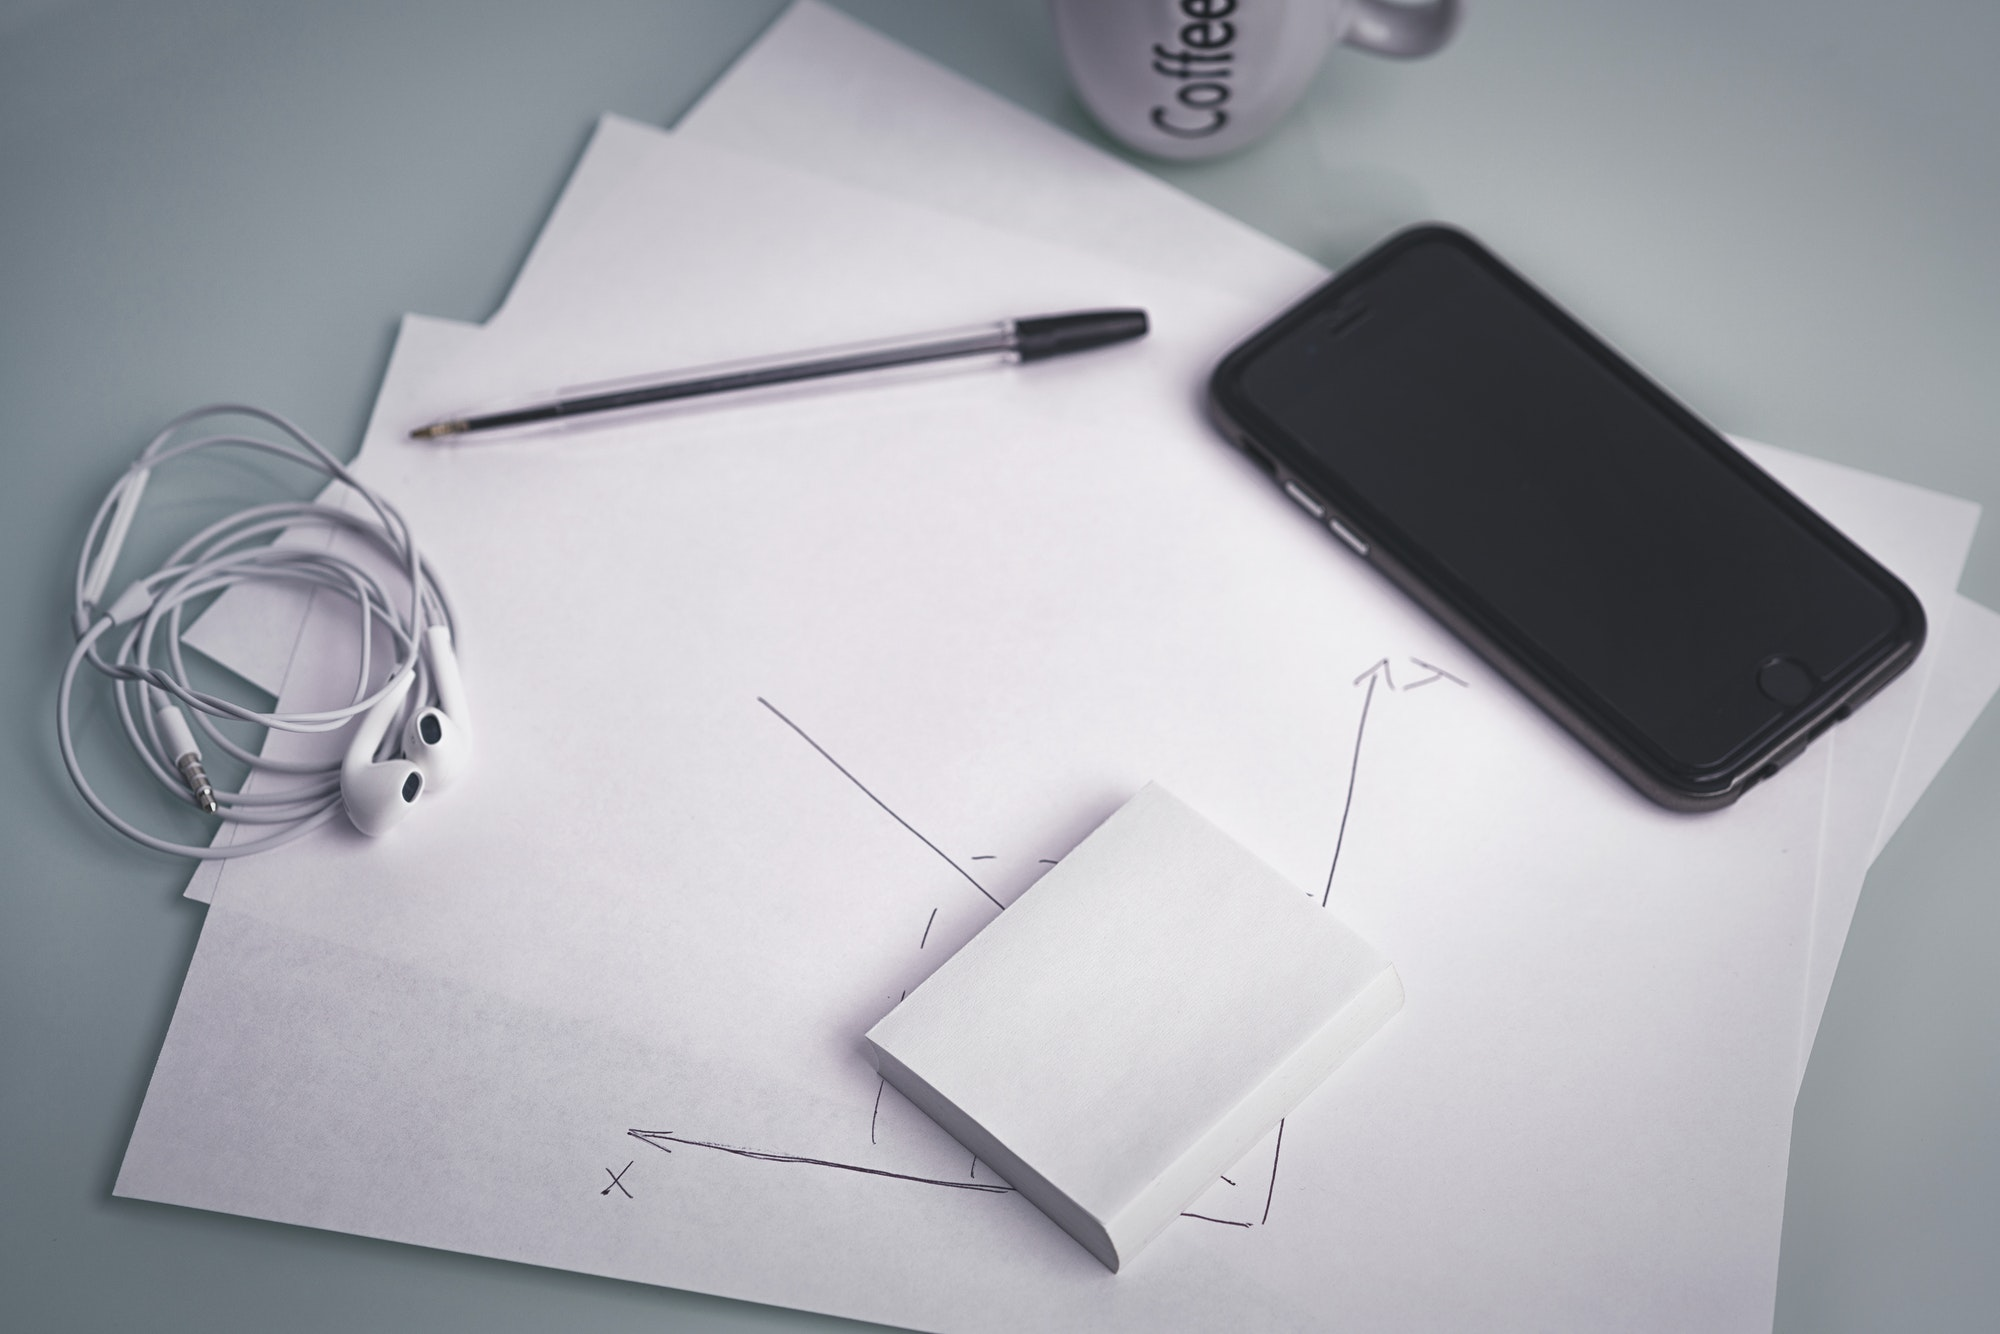 phone and pen, a core set of hipster designer's workplace